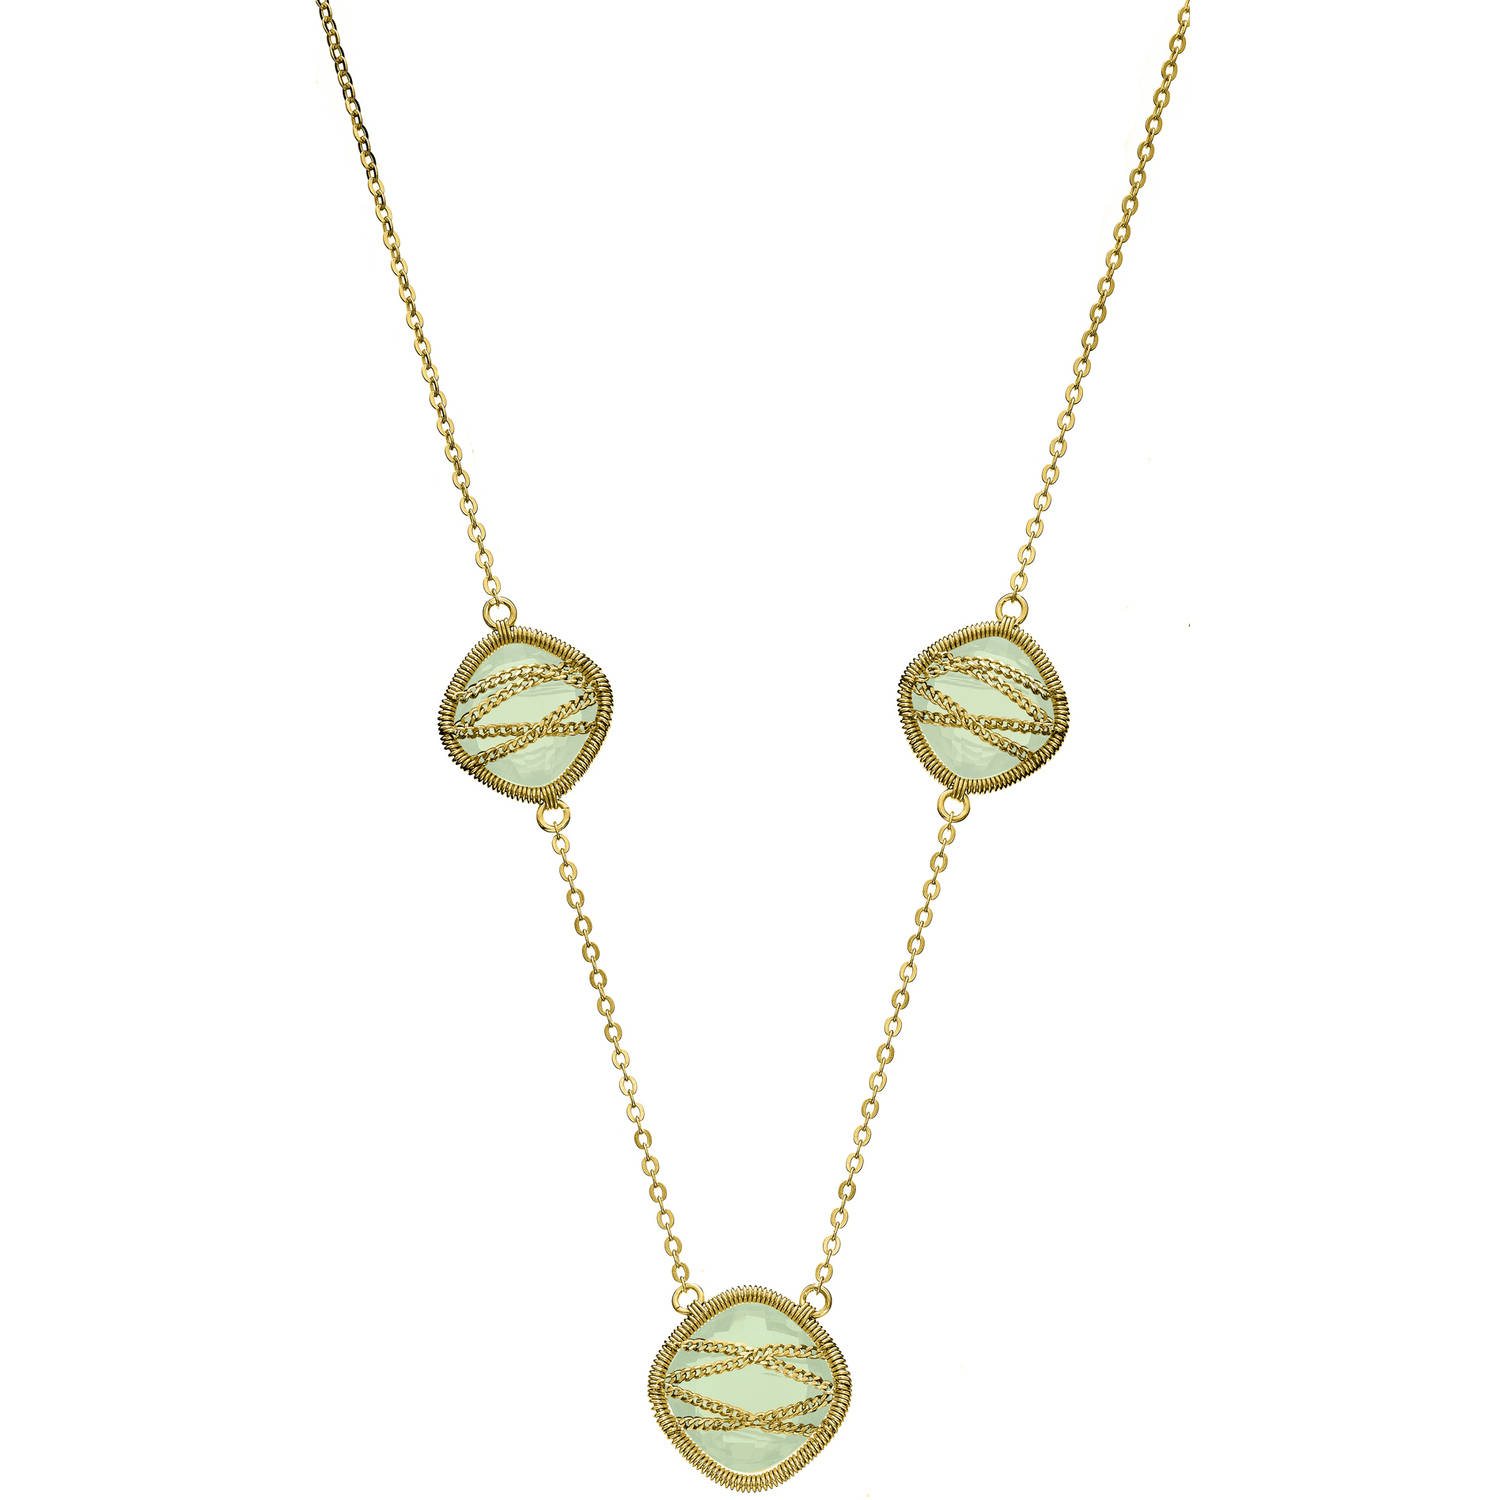 Image of 5th & Main 18kt Gold over Sterling Silver Hand-Wrapped Triple-Squared Chalcedony Stone Necklace